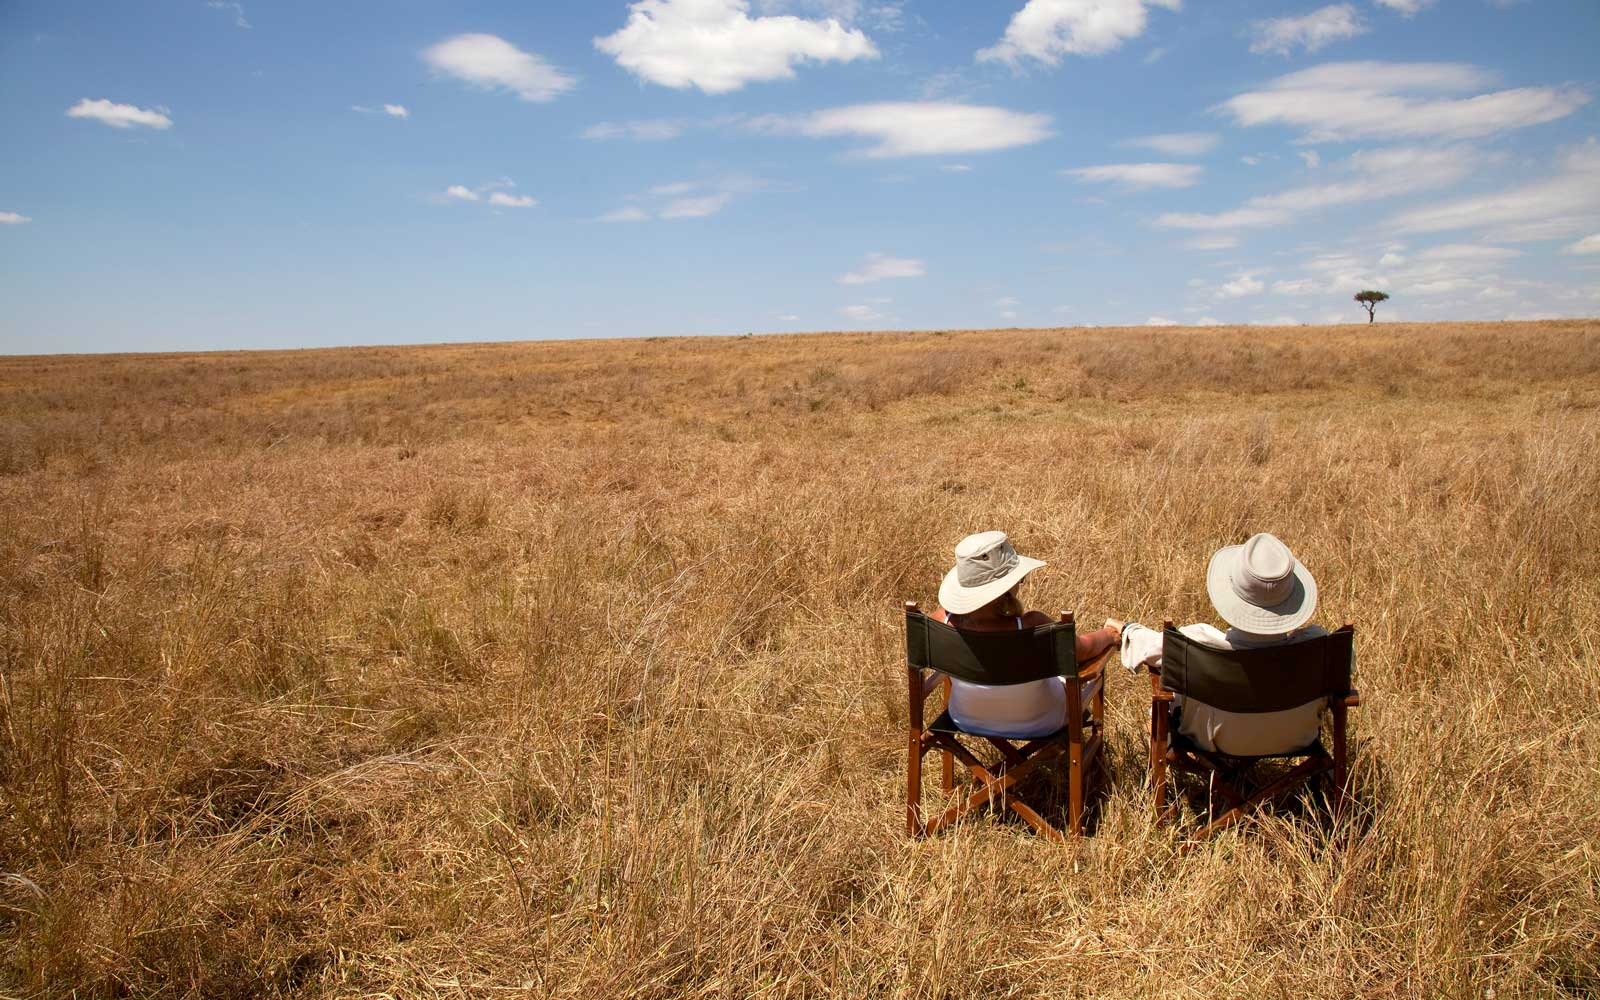 Couple on Safari, Maasai Mara National Reserve, Narok District, Kenya